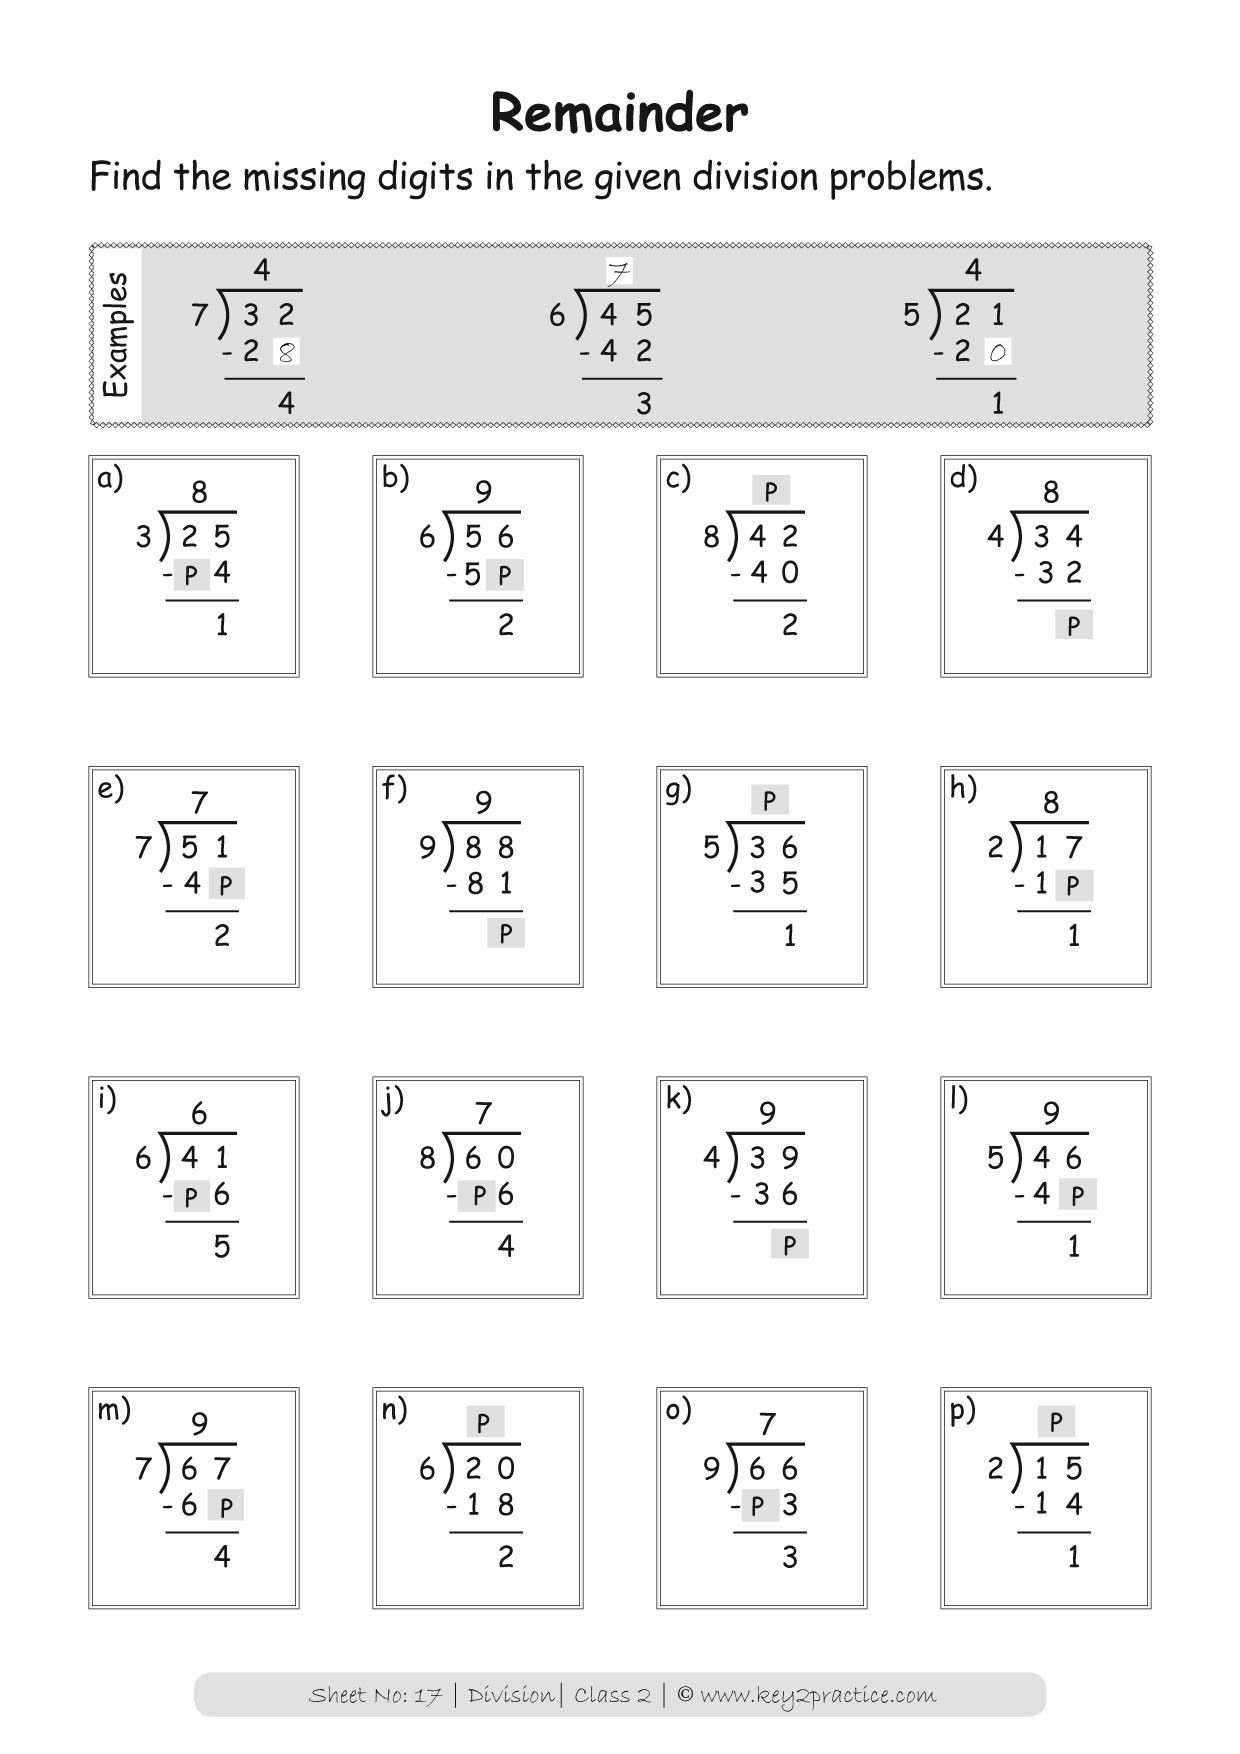 Division Worksheets for Grade 2 Division Worksheets Grade 2 I Maths Key2practice Workbooks